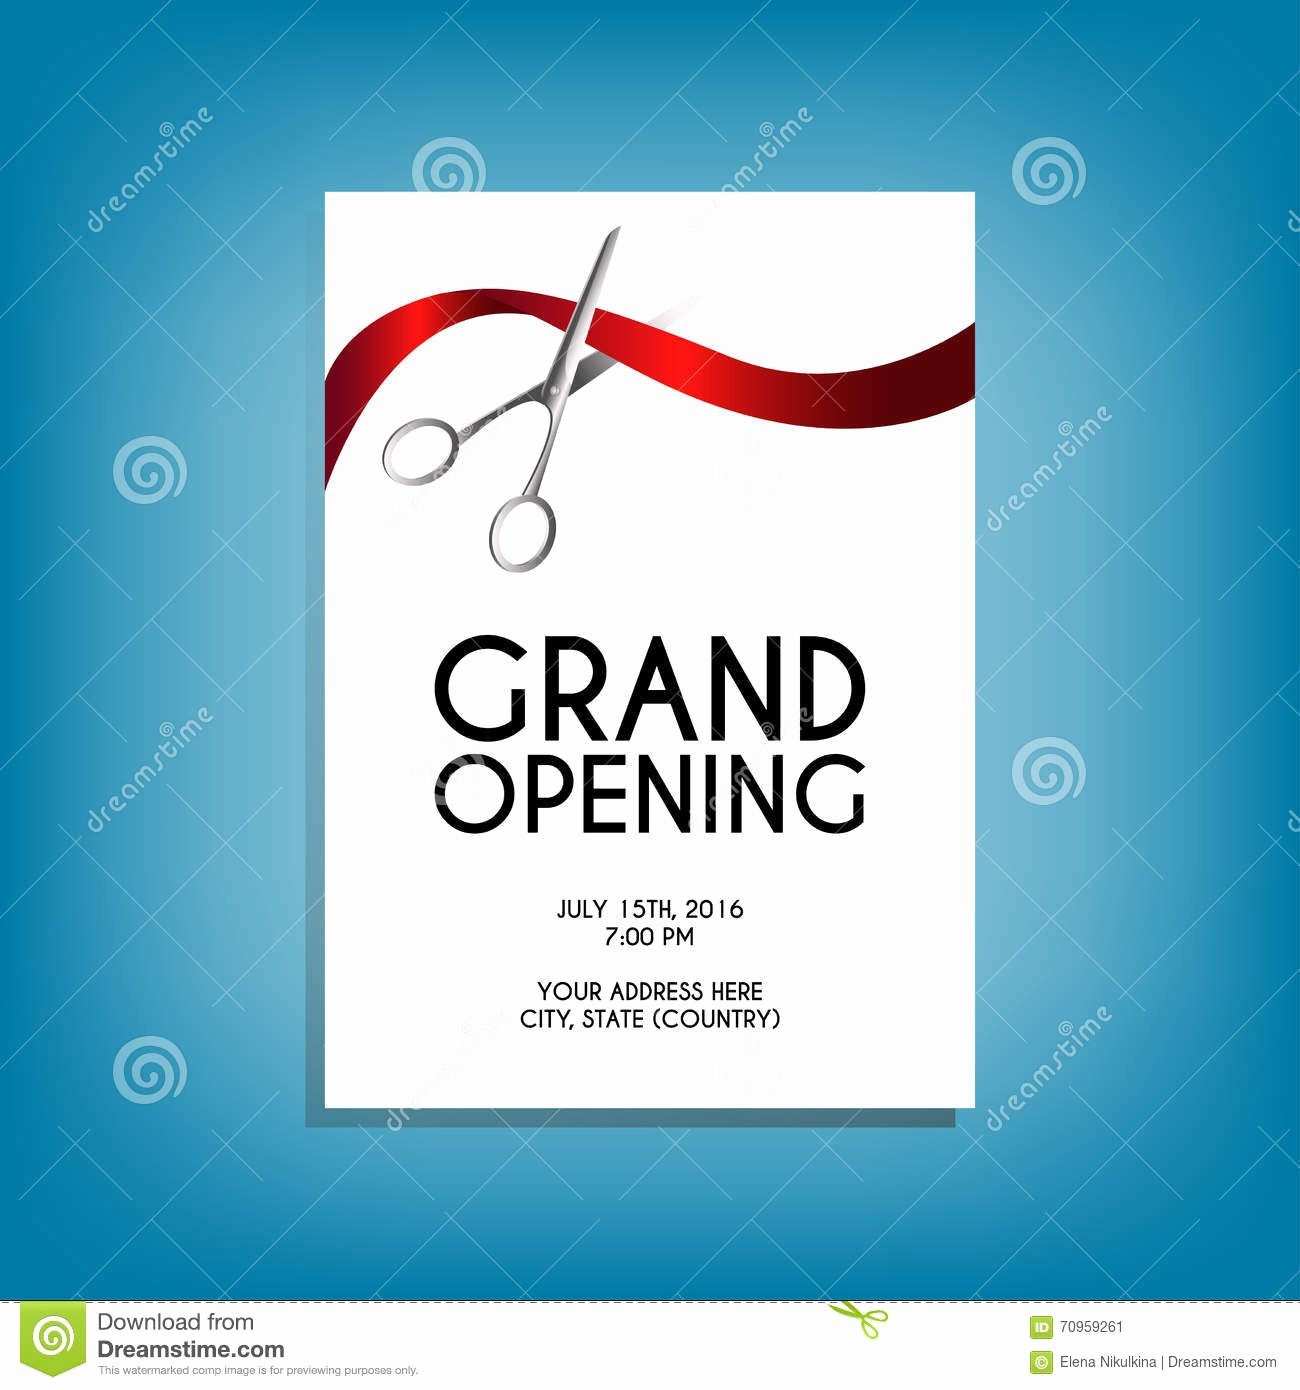 Grand Opening Flyer Mock Up with Silver Scissors Cutting